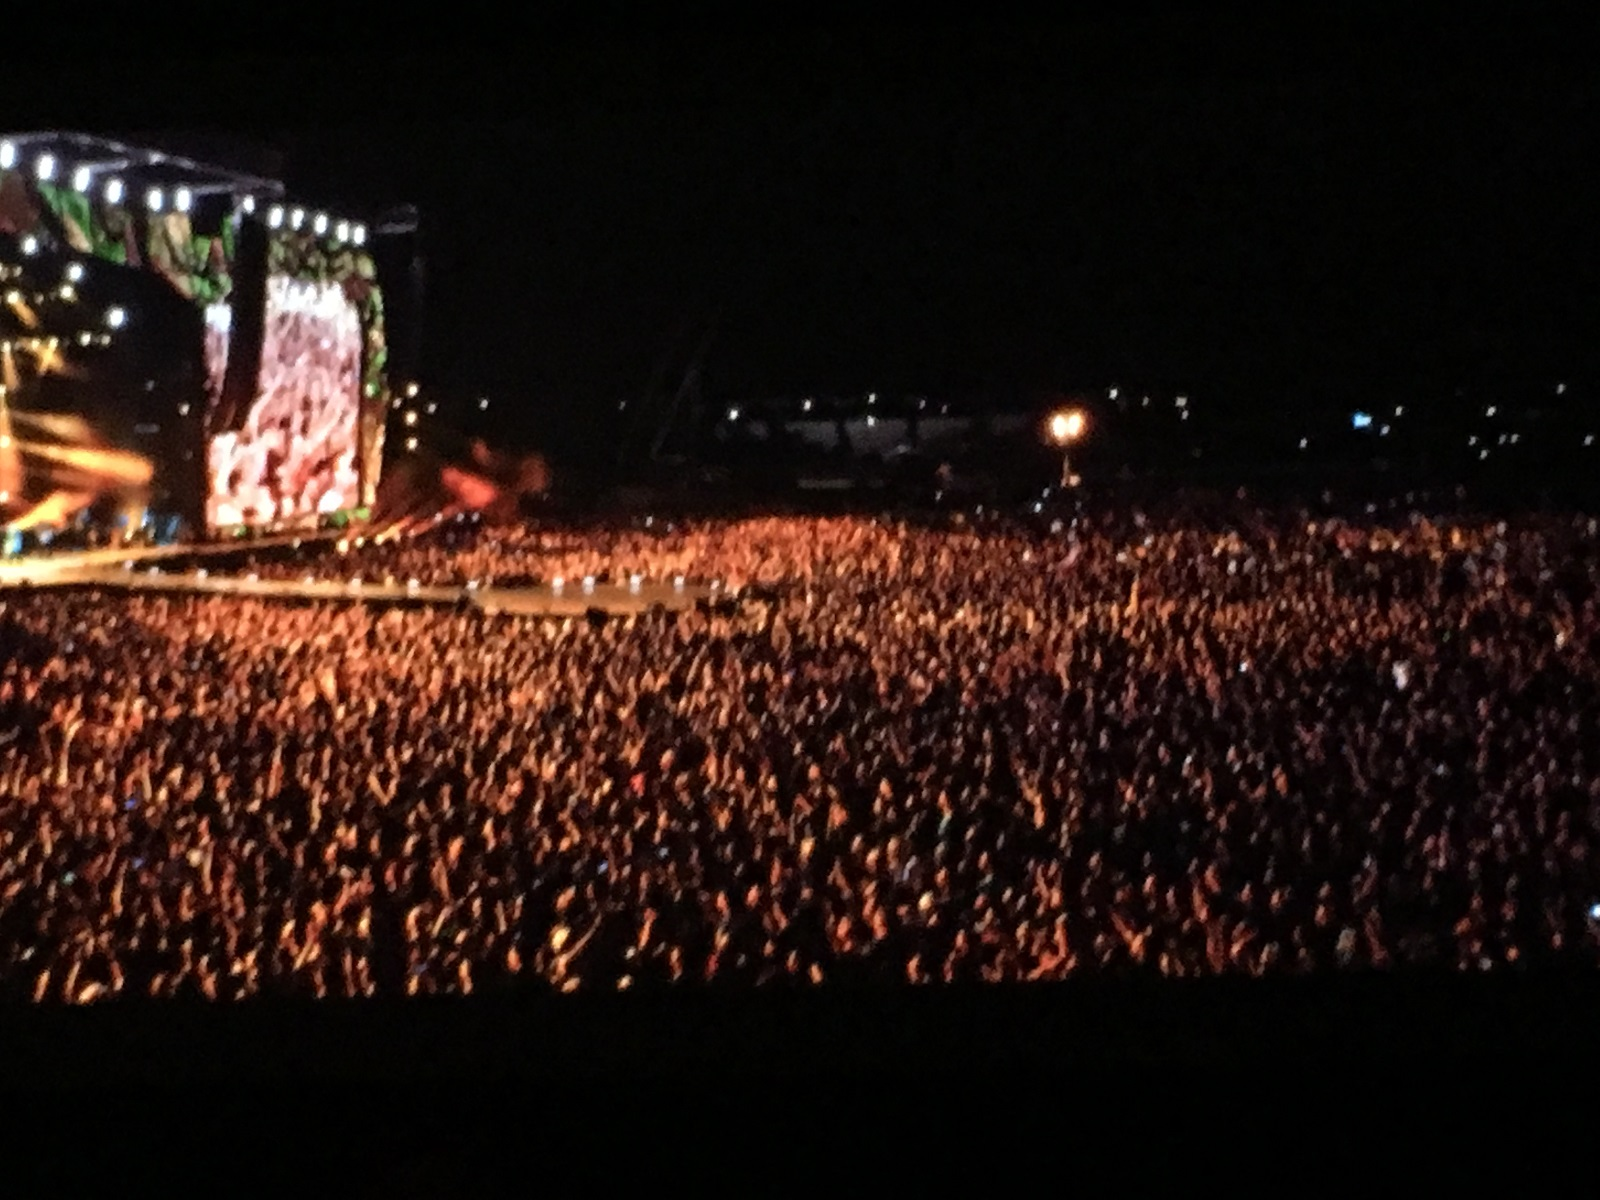 The Rolling Stones Historic Concert in Havana Cuba. Photo credit: Socially Sparked News